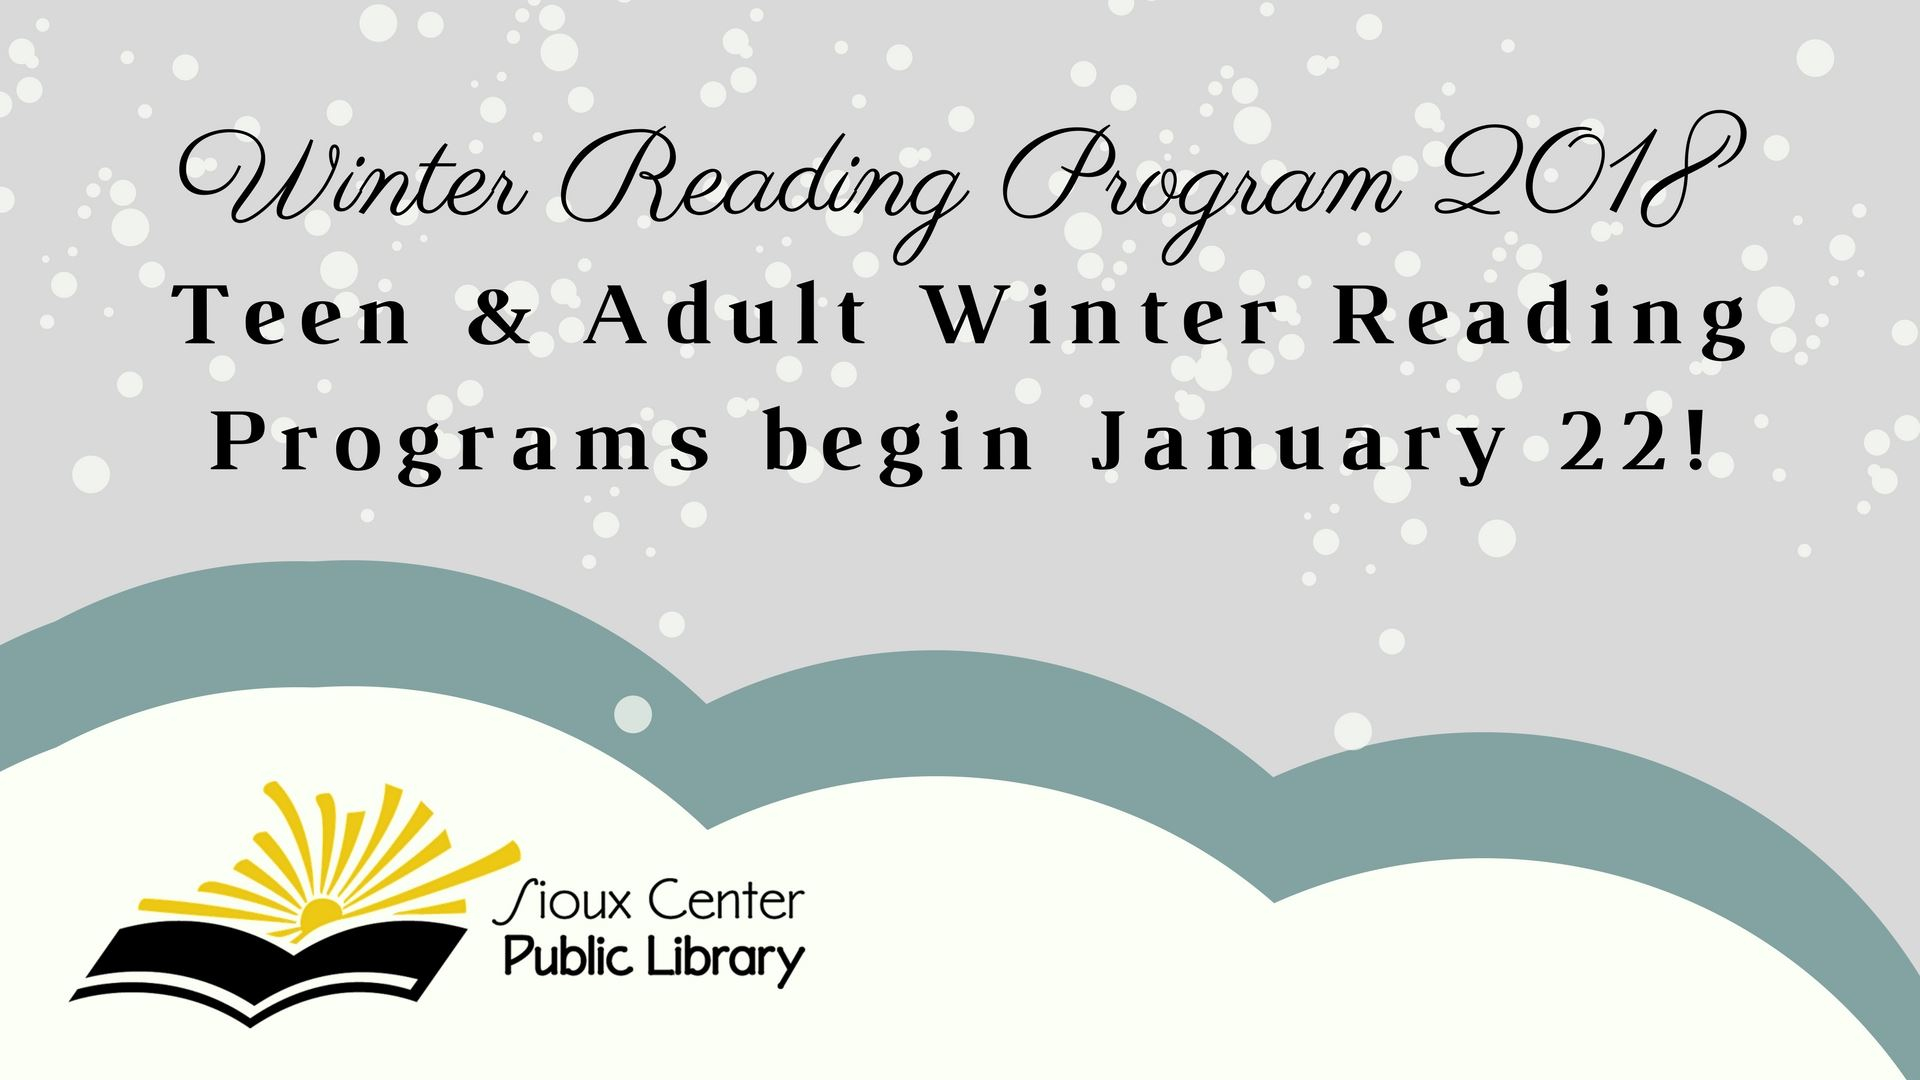 Winter Reading Program 2018